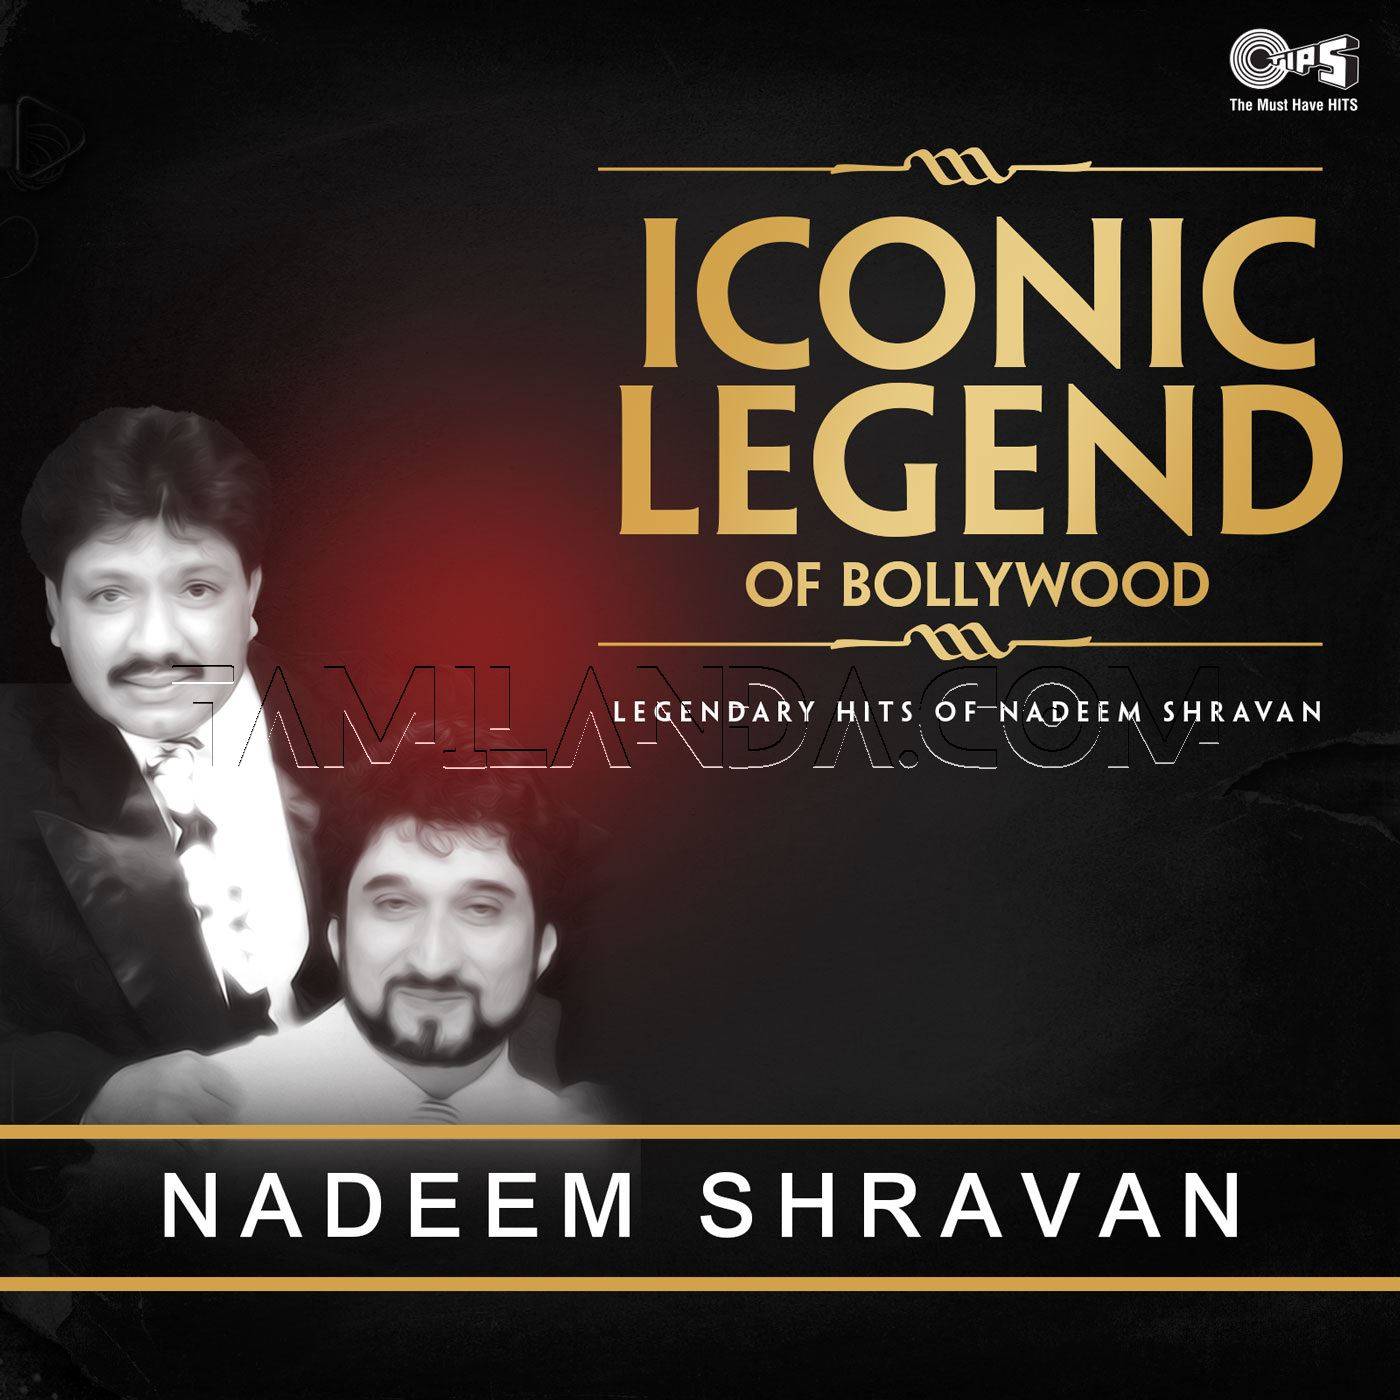 Iconic Legend of Bollywood Legendary Hits of Nadeem Shravan (2017)